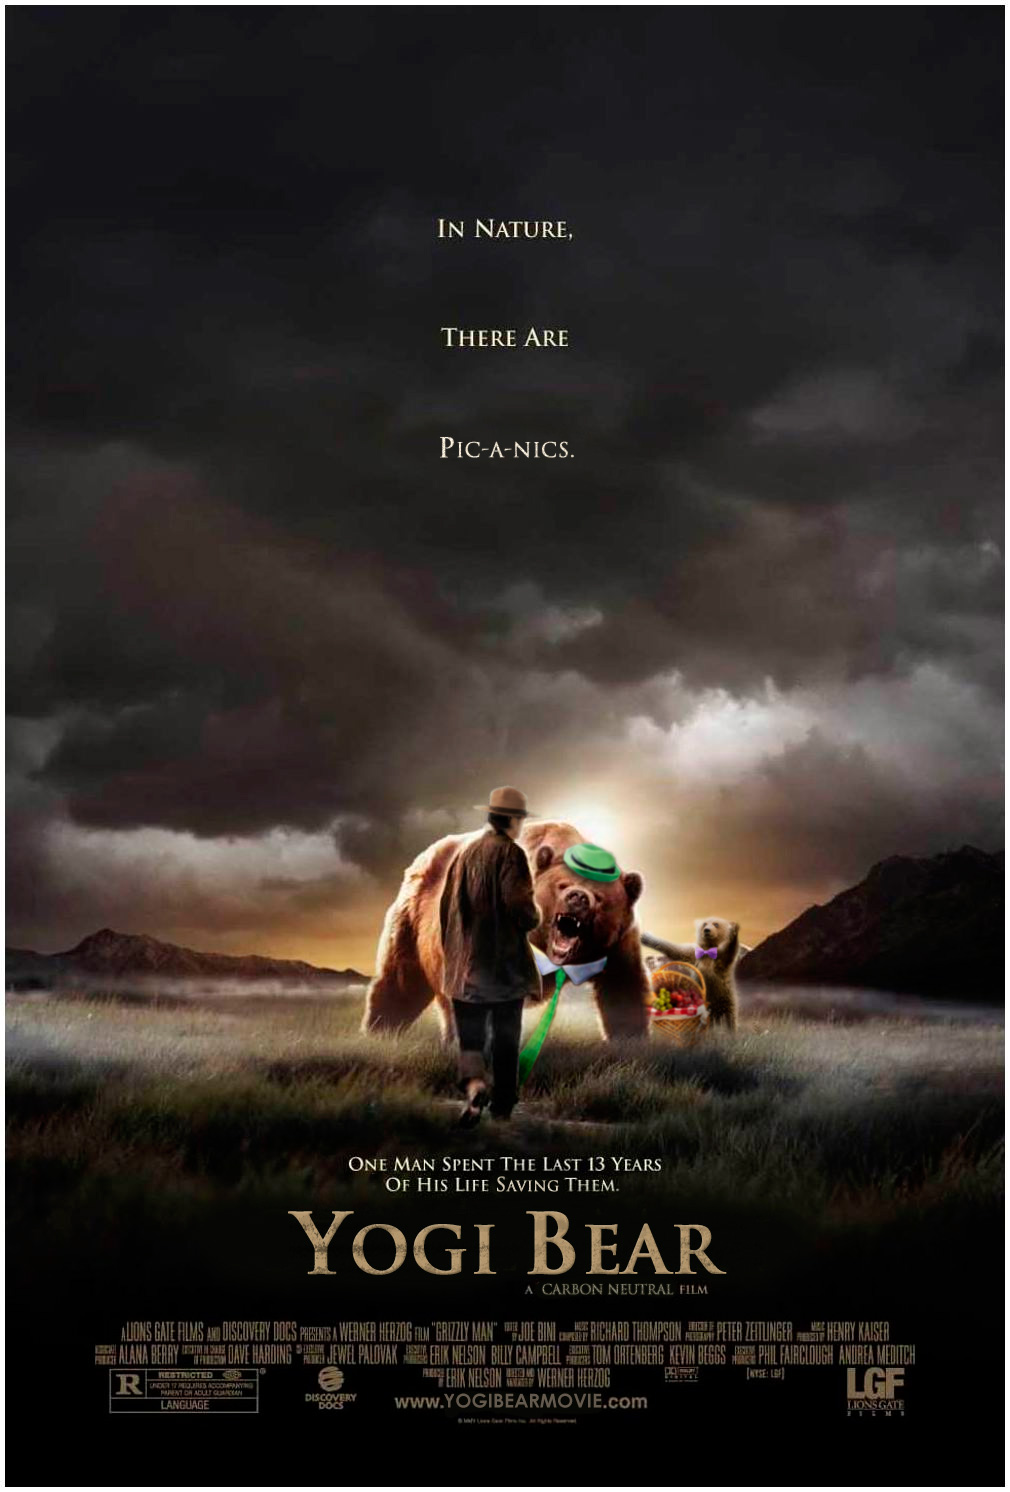 Hd Yogi Bear Movie Pictures Images Posters Wallpapers Photo Gallary